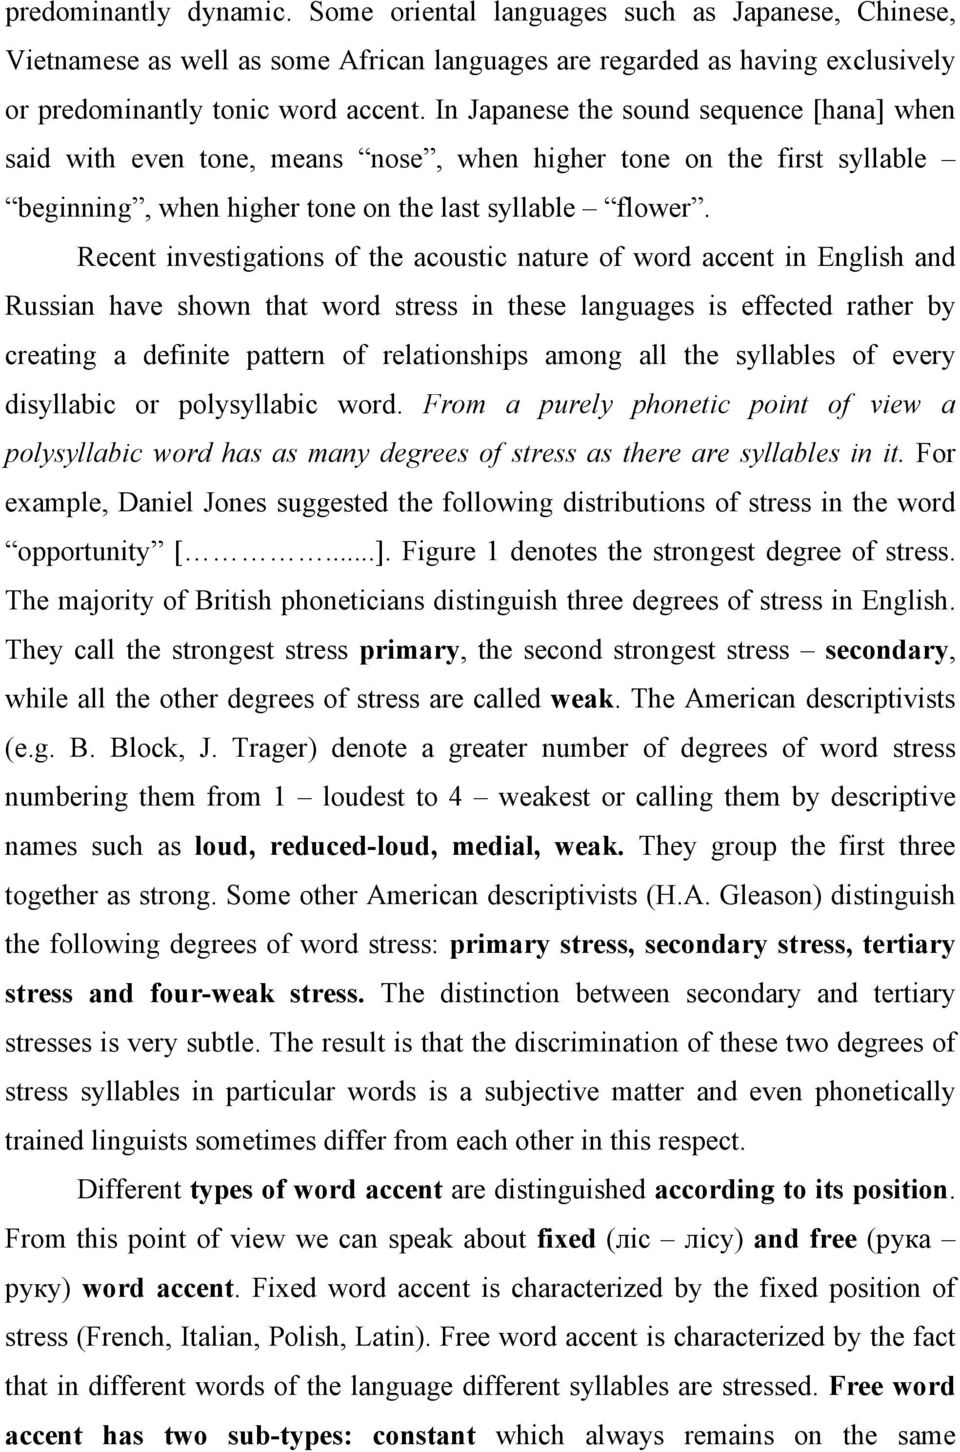 Recent investigations of the acoustic nature of word accent in English and Russian have shown that word stress in these languages is effected rather by creating a definite pattern of relationships